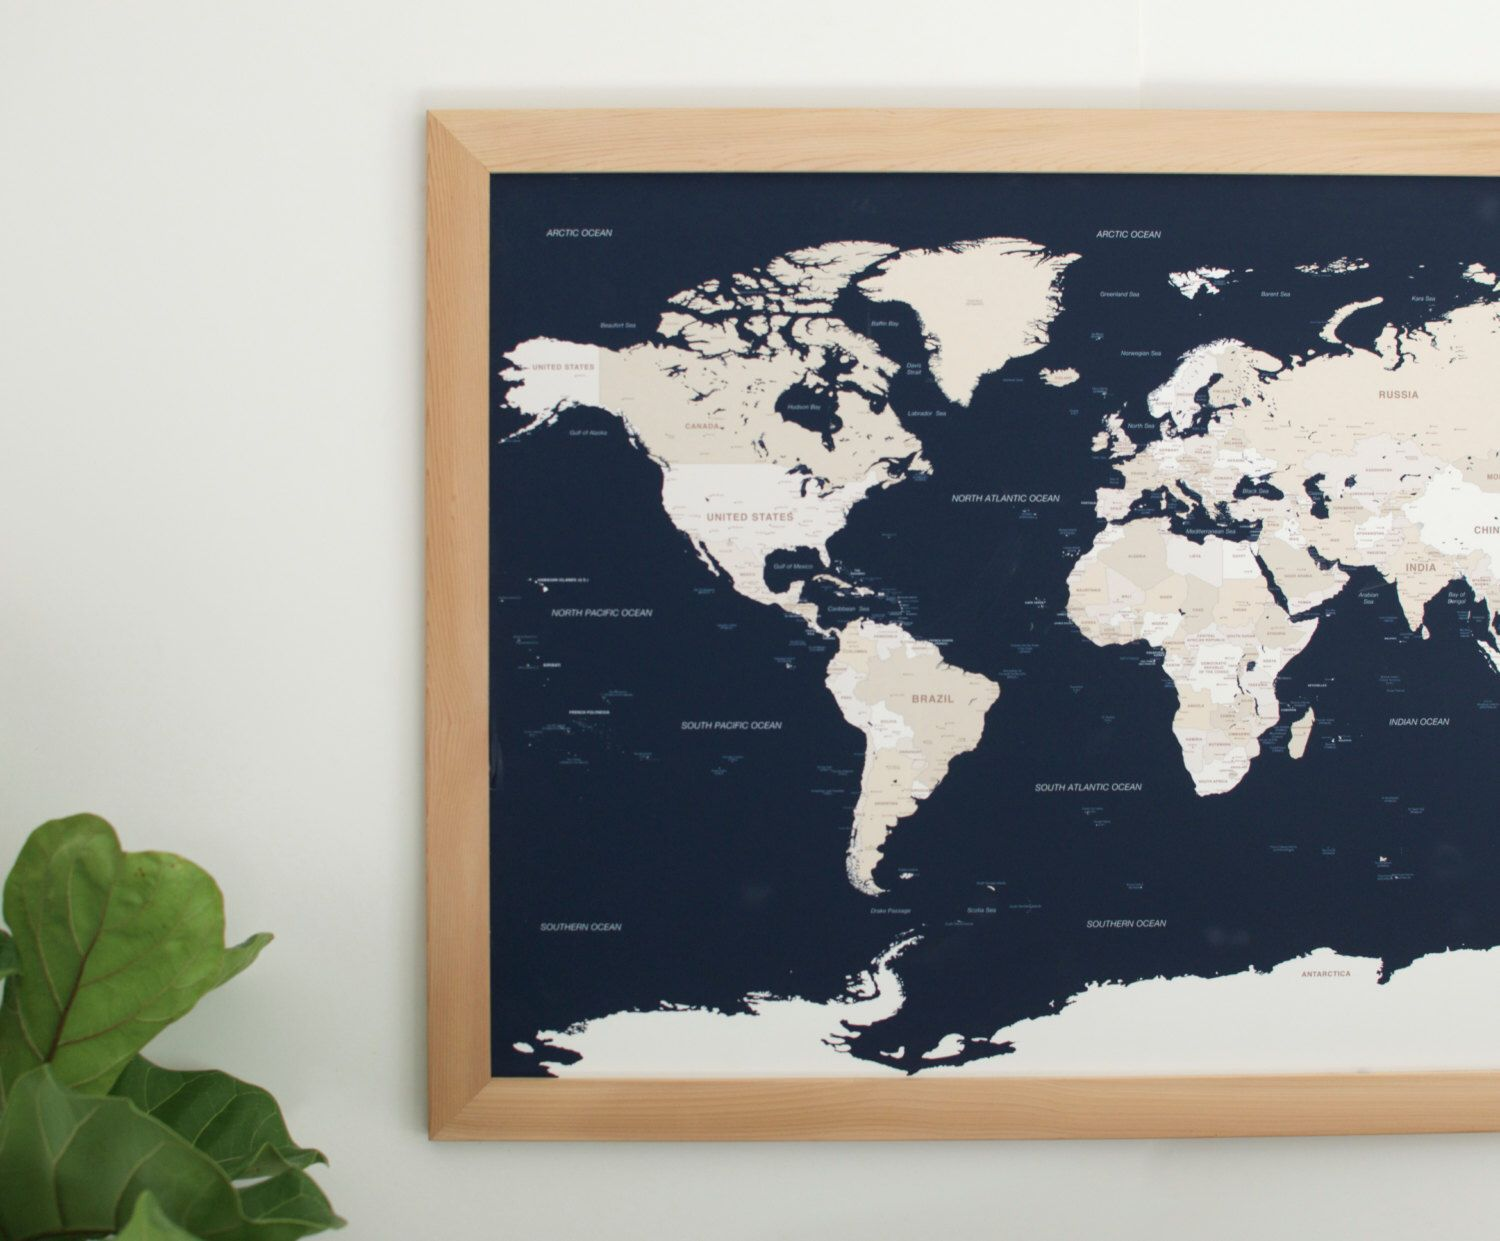 Pin by Bri Chapman on Home: Decor | Pinterest | Travel maps, Map and ...